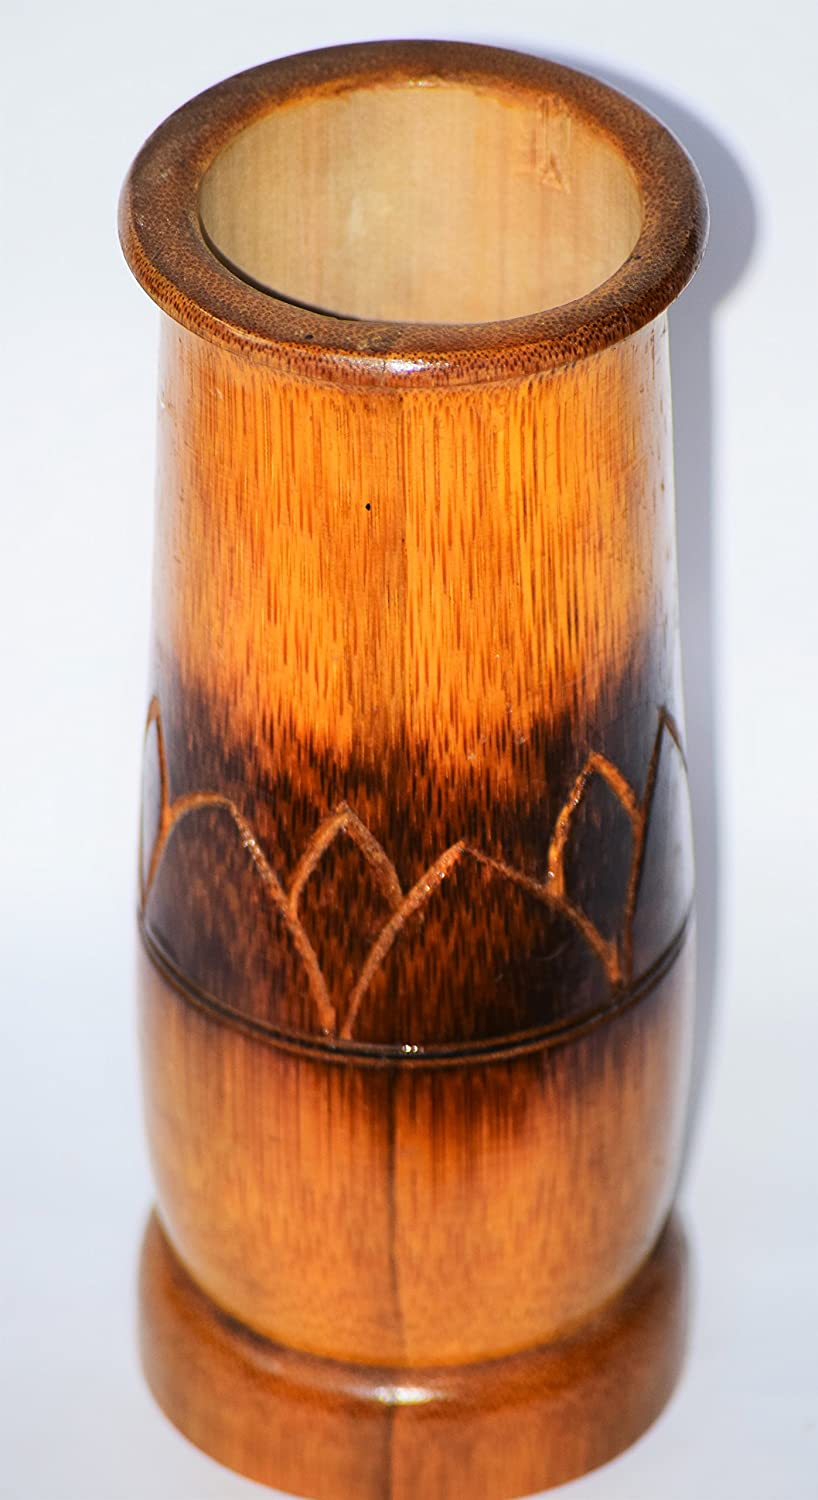 DC ECO Flower, vase Bamboo product,from CR PAUL. with out flower.